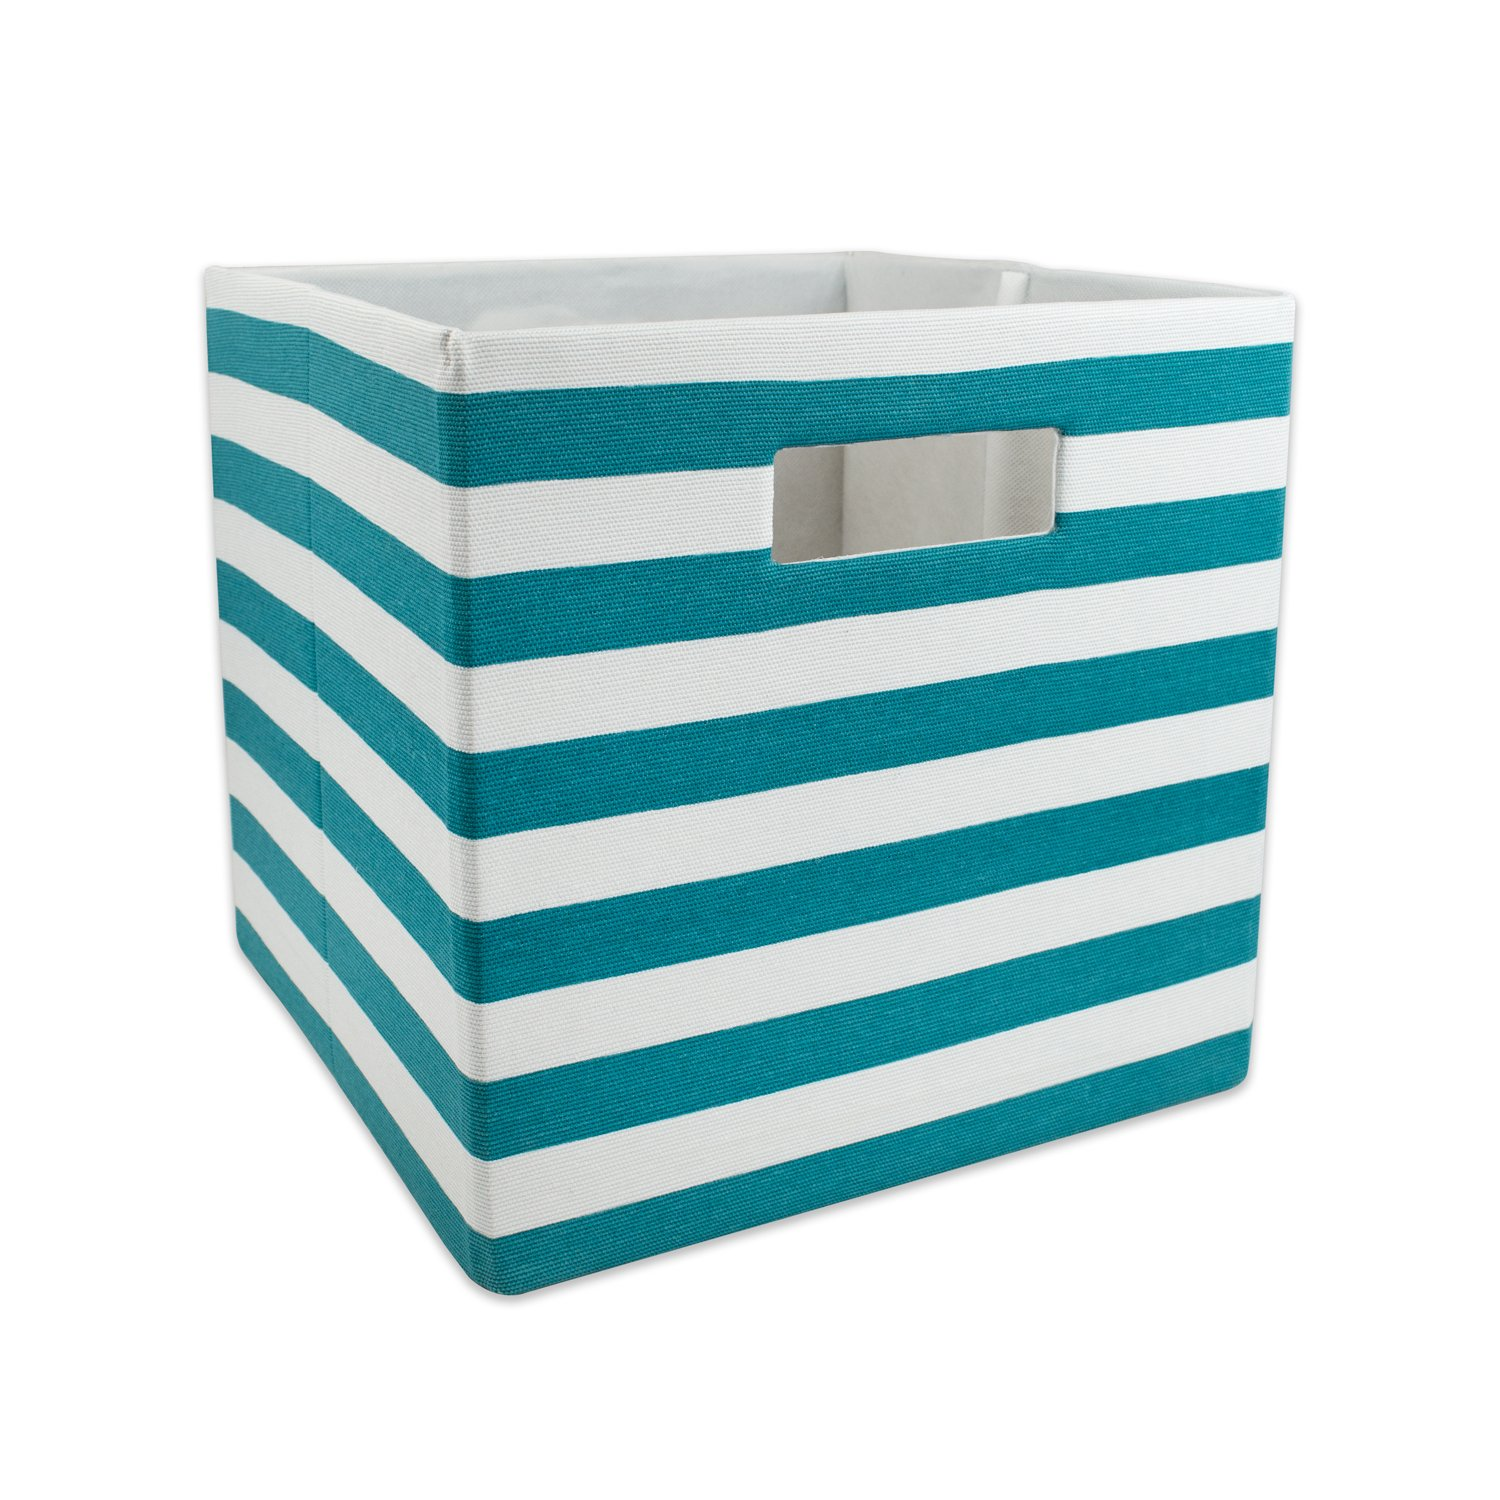 DII Hard Sided Collapsible Fabric Storage Container for Nursery, Offices, Home Organization, (13x13x13) - Stripe Teal